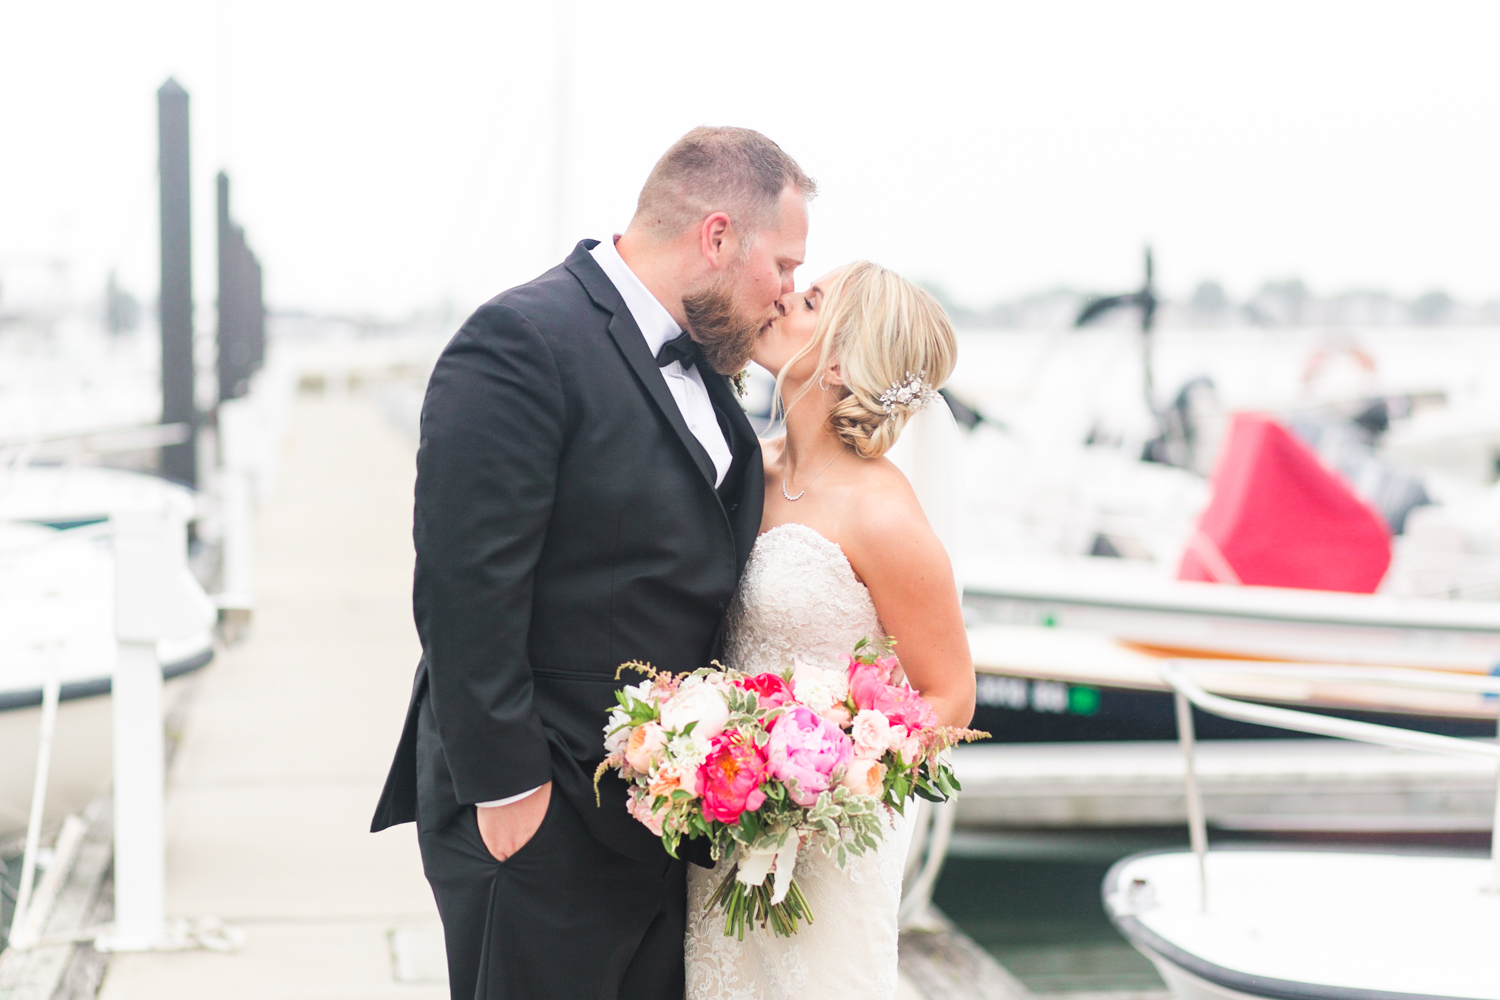 the-inn-at-longshore-wedding-westport-connecticut-photographer-shaina-lee-photography-photo-1.jpg